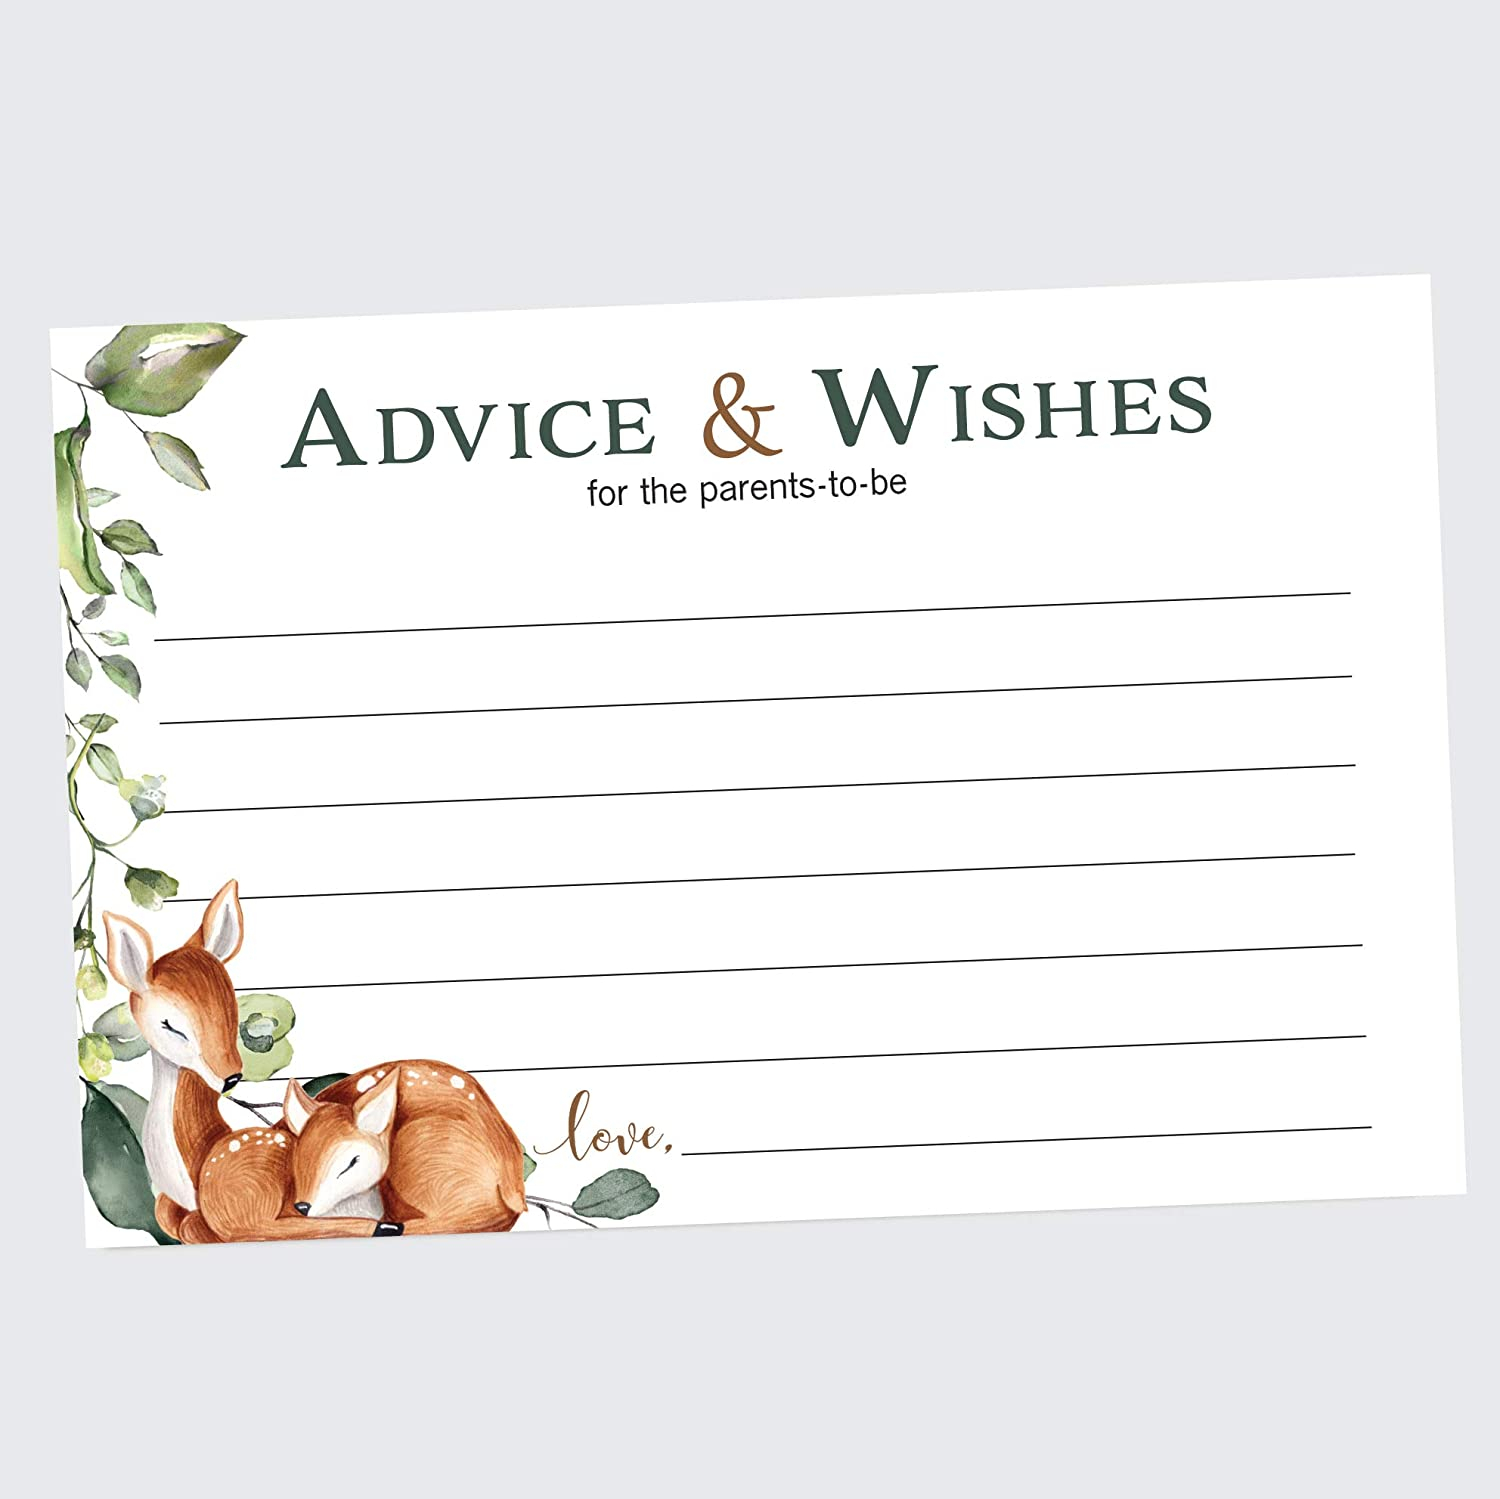 Oh Deer! Advice and Wishes Cards, Set of 50, Advice Cards for Baby Shower, Woodland Baby Shower Advice Cards